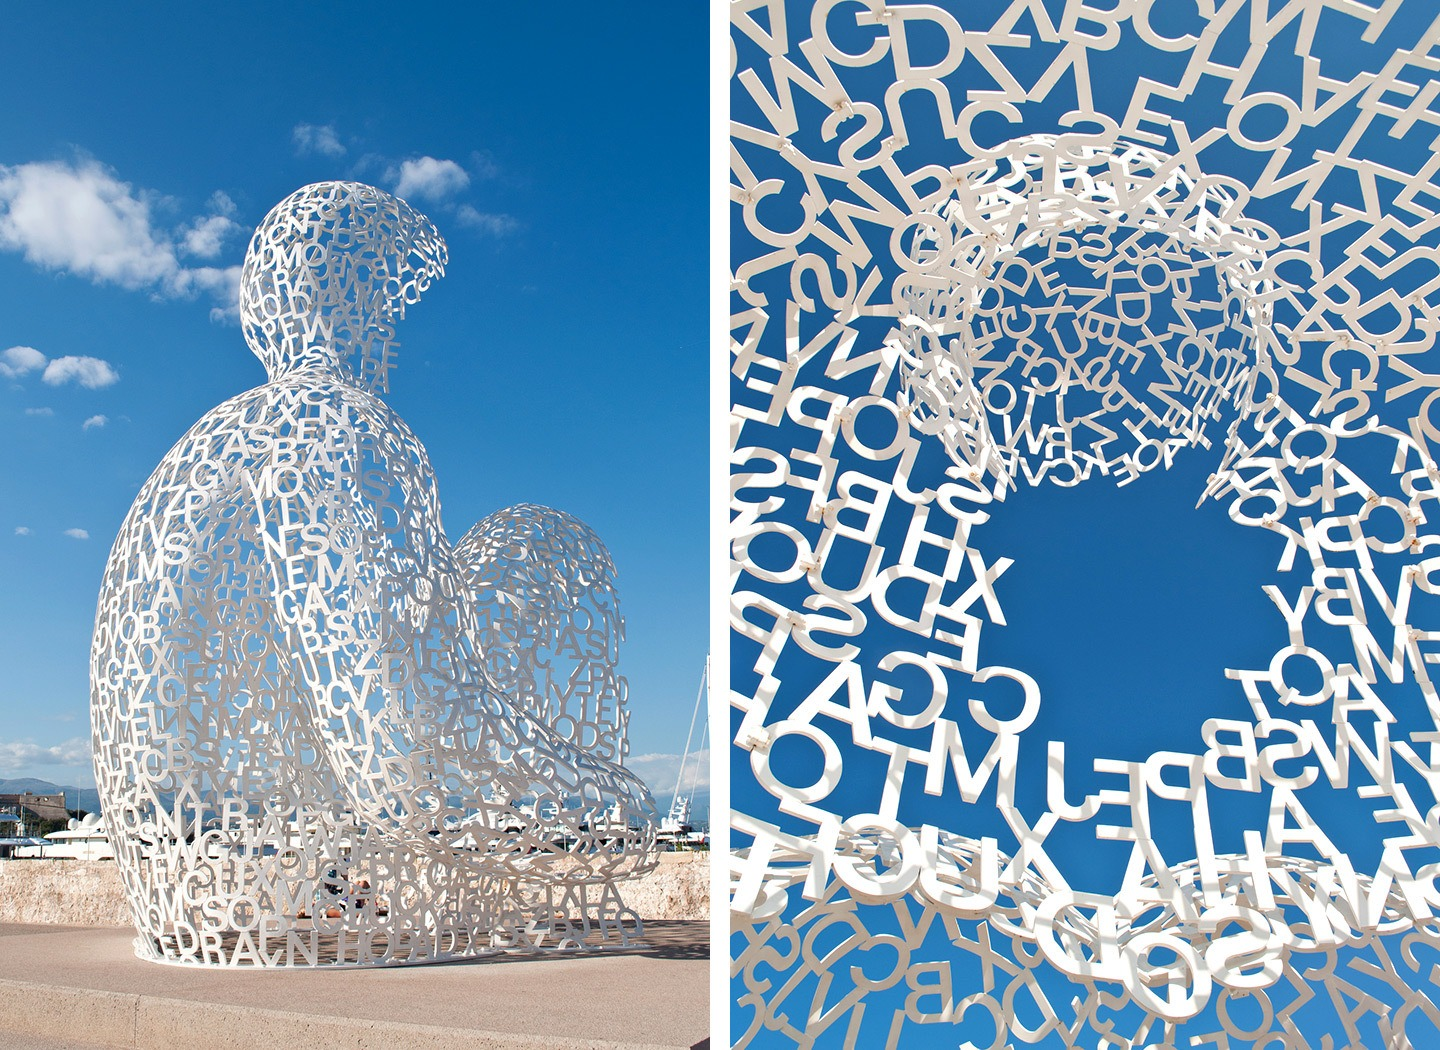 Jaume Plensa's Nomade statue, Antibes, South of France